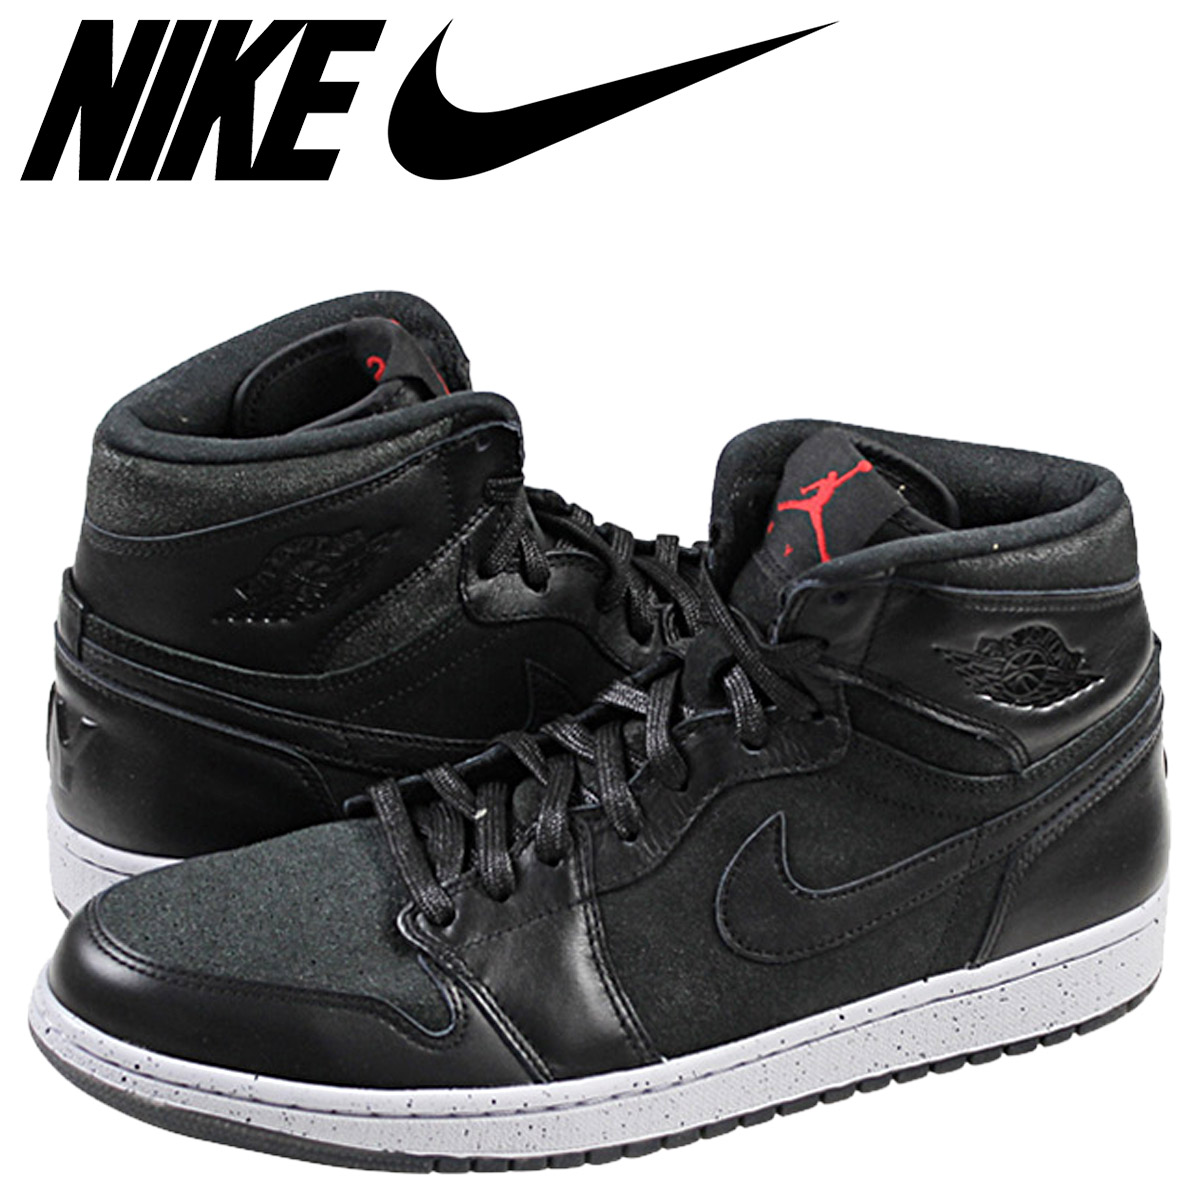 prix compétitif 55181 9b50a Nike NIKE Air Jordan-sneakers AIR JORDAN 1 RETRO HIGH NYC FLIGHT 23-Air  Jordan retro high 715060-002 black mens